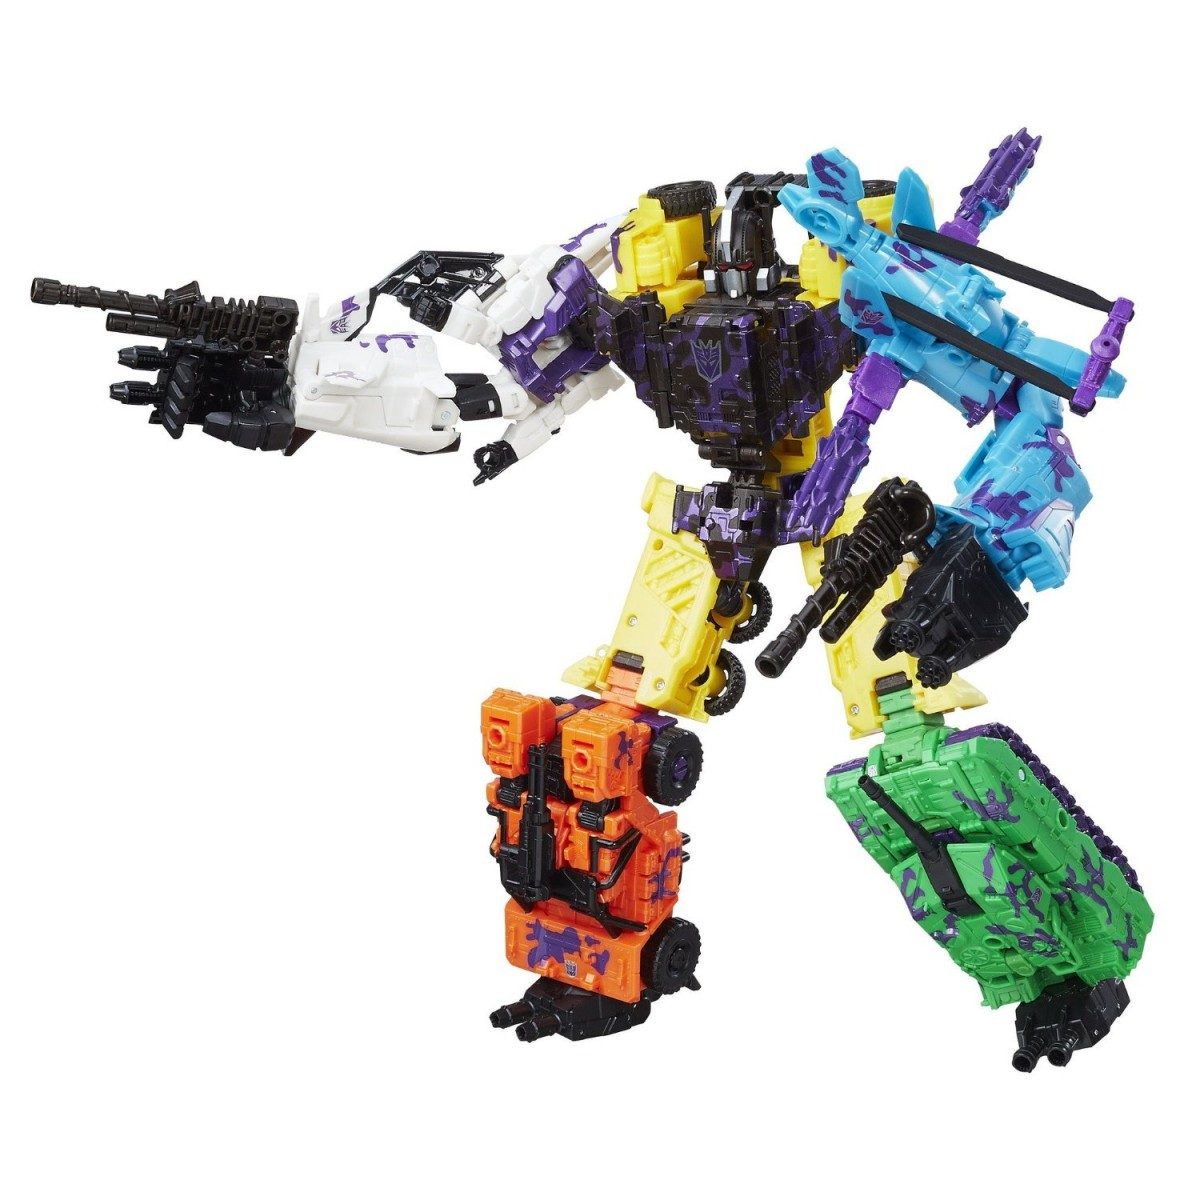 Transformers News: Amazon Prime Day Transformers Deals: Combiner Wars G2 Bruticus,Fort Max, Rescue Bots Griffin Rock HQ